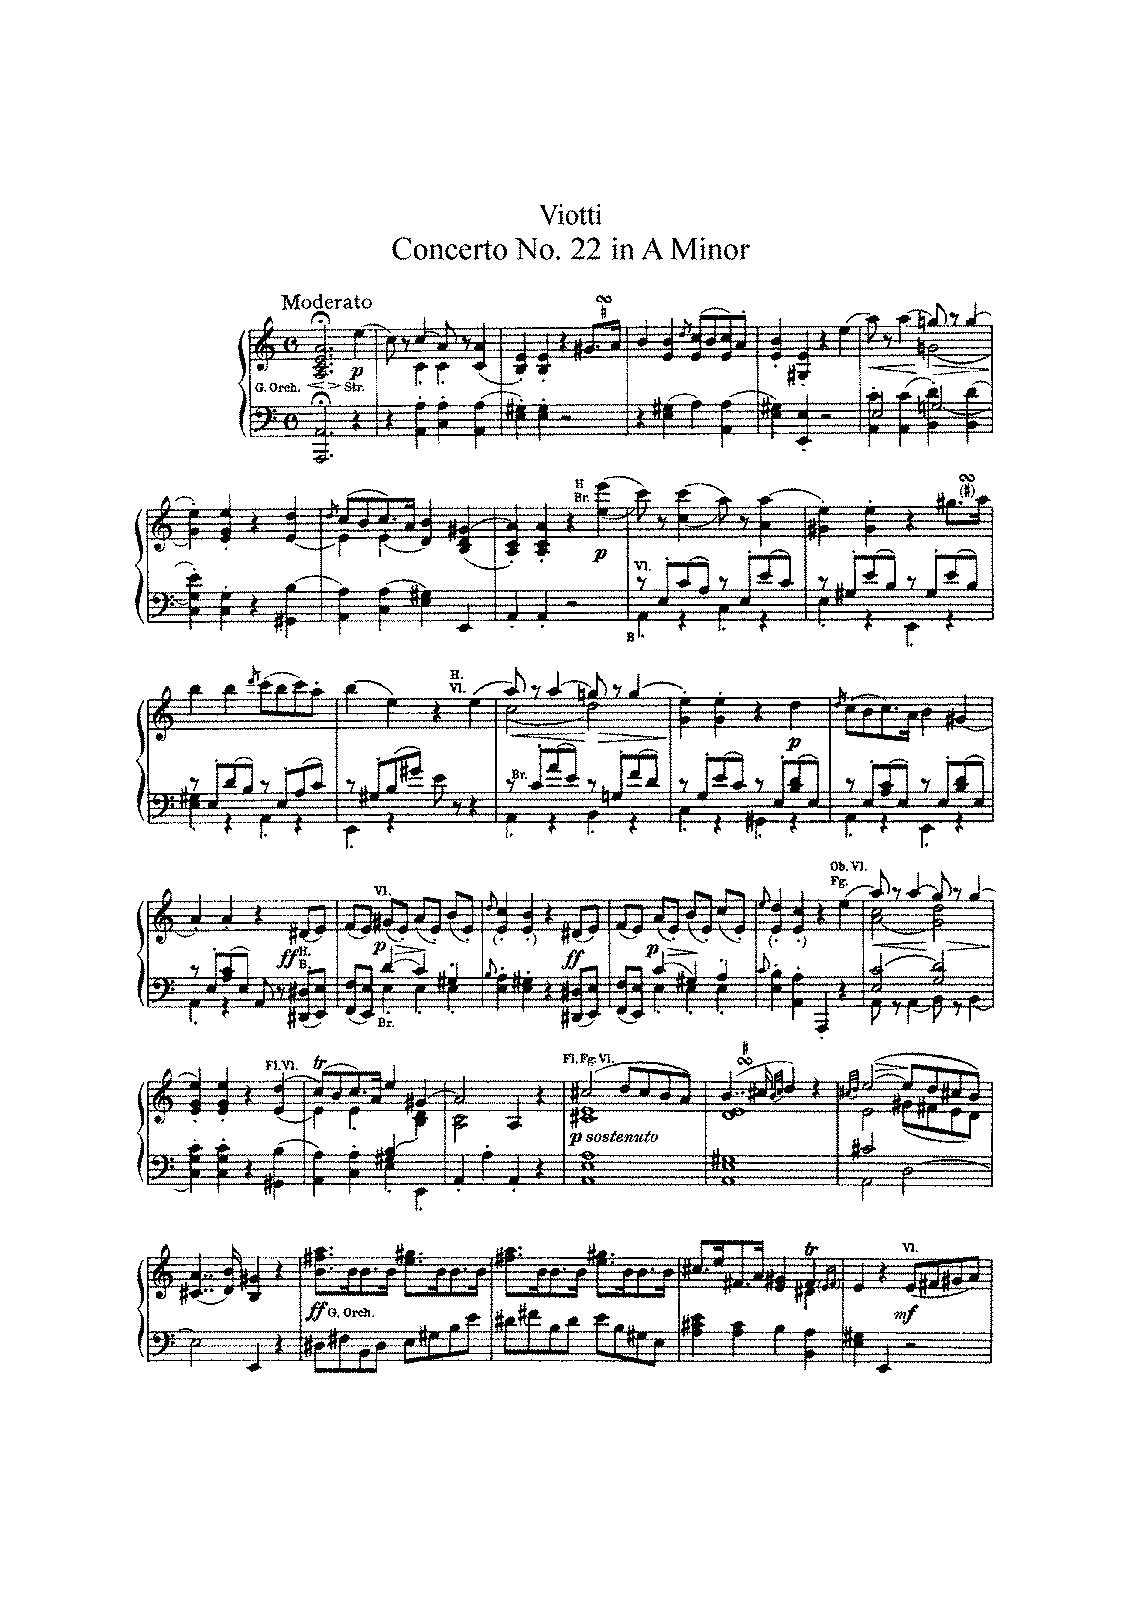 Viotti Violin Concerto No 22 A-Minor.pdf